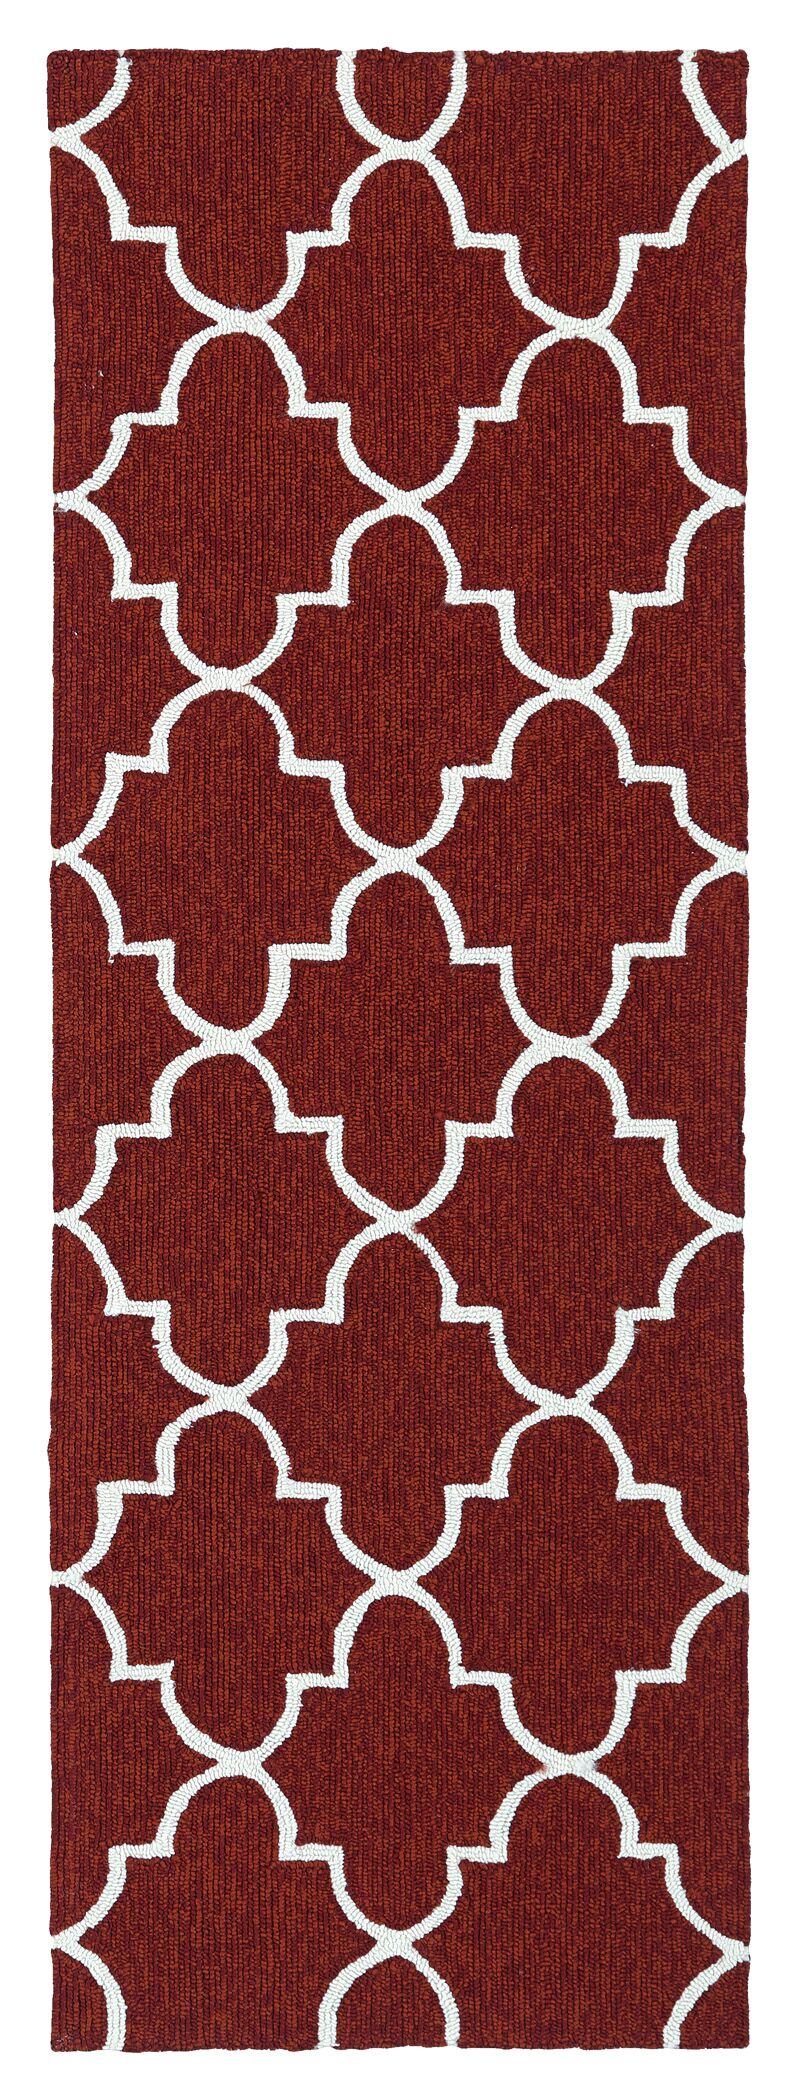 Cowan Hand-Tufted Red Indoor/Outdoor Area Rug Rug Size: Rectangle 8' x 10'